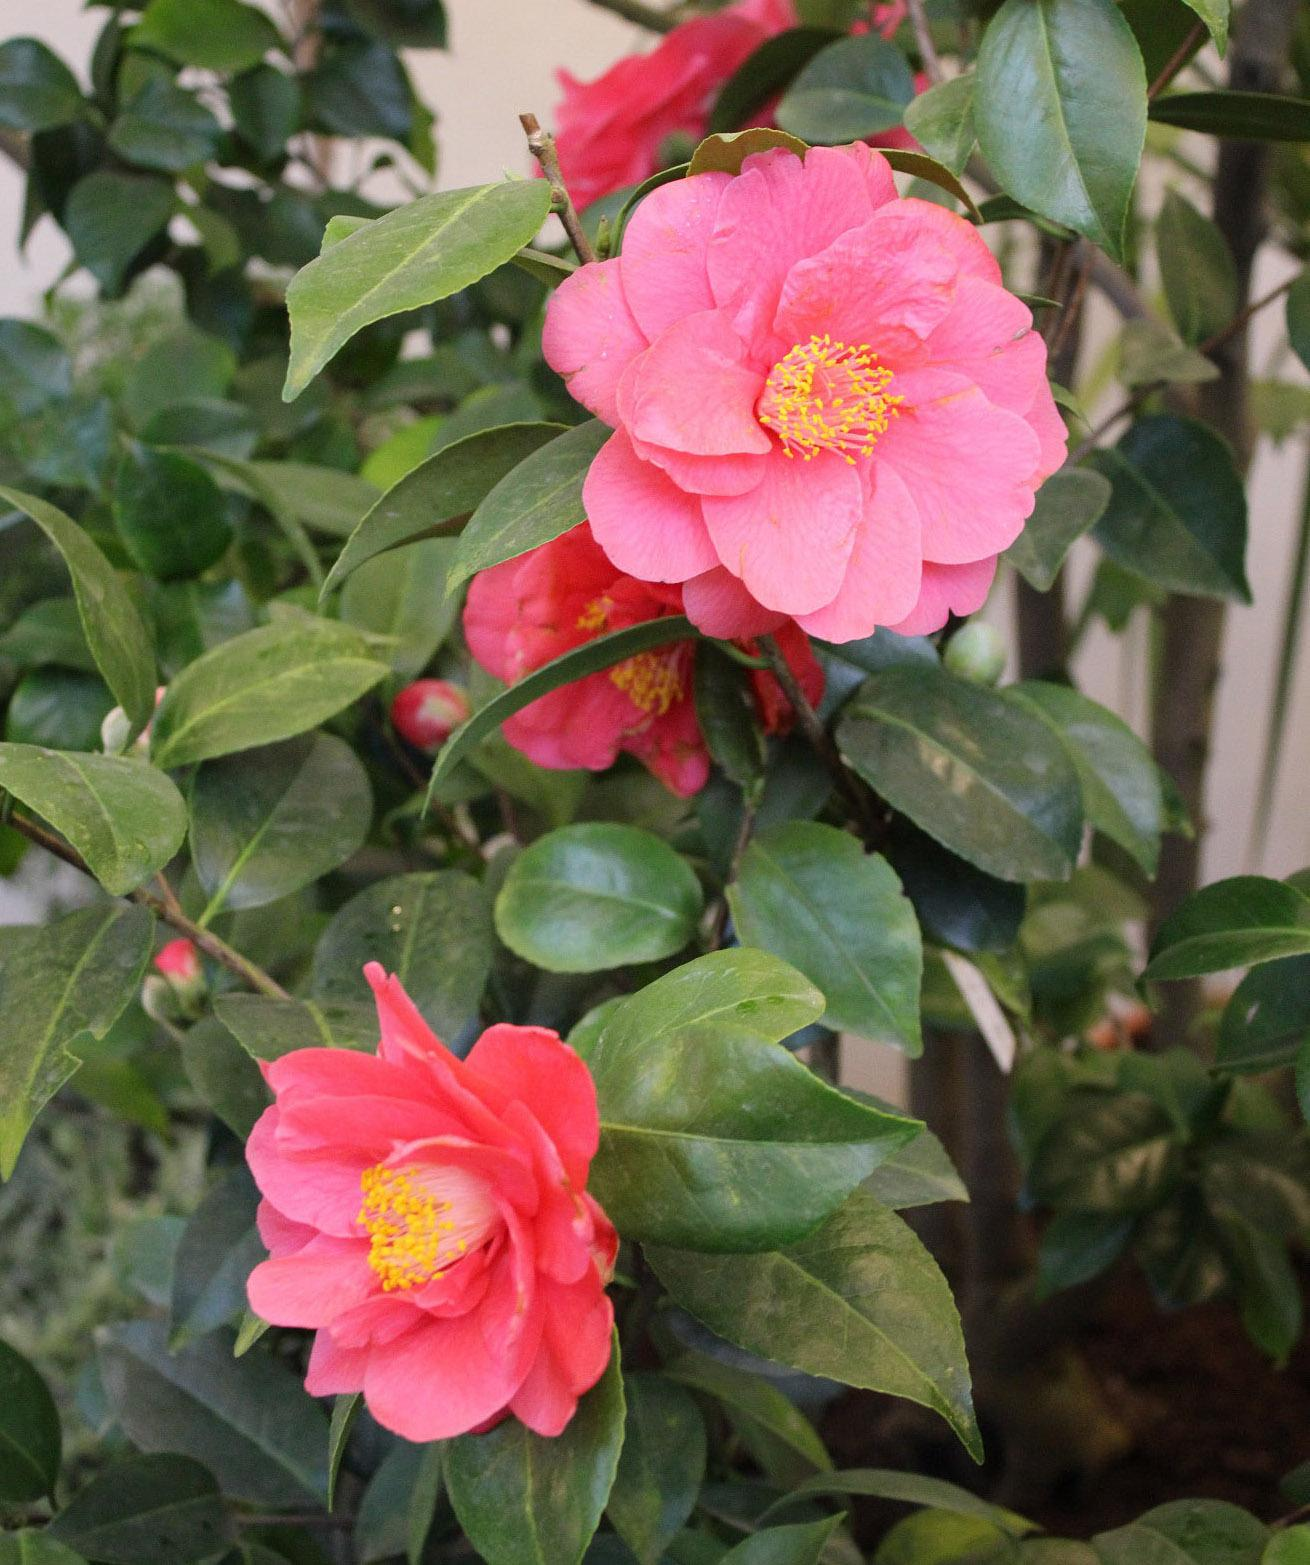 Camellias are native to China and Japan and have been a symbolic part of their cultures for thousands of years. The Chinese were cultivating camellias in 2737 B.C., but the flowers did not reach Europe until the mid-1700s